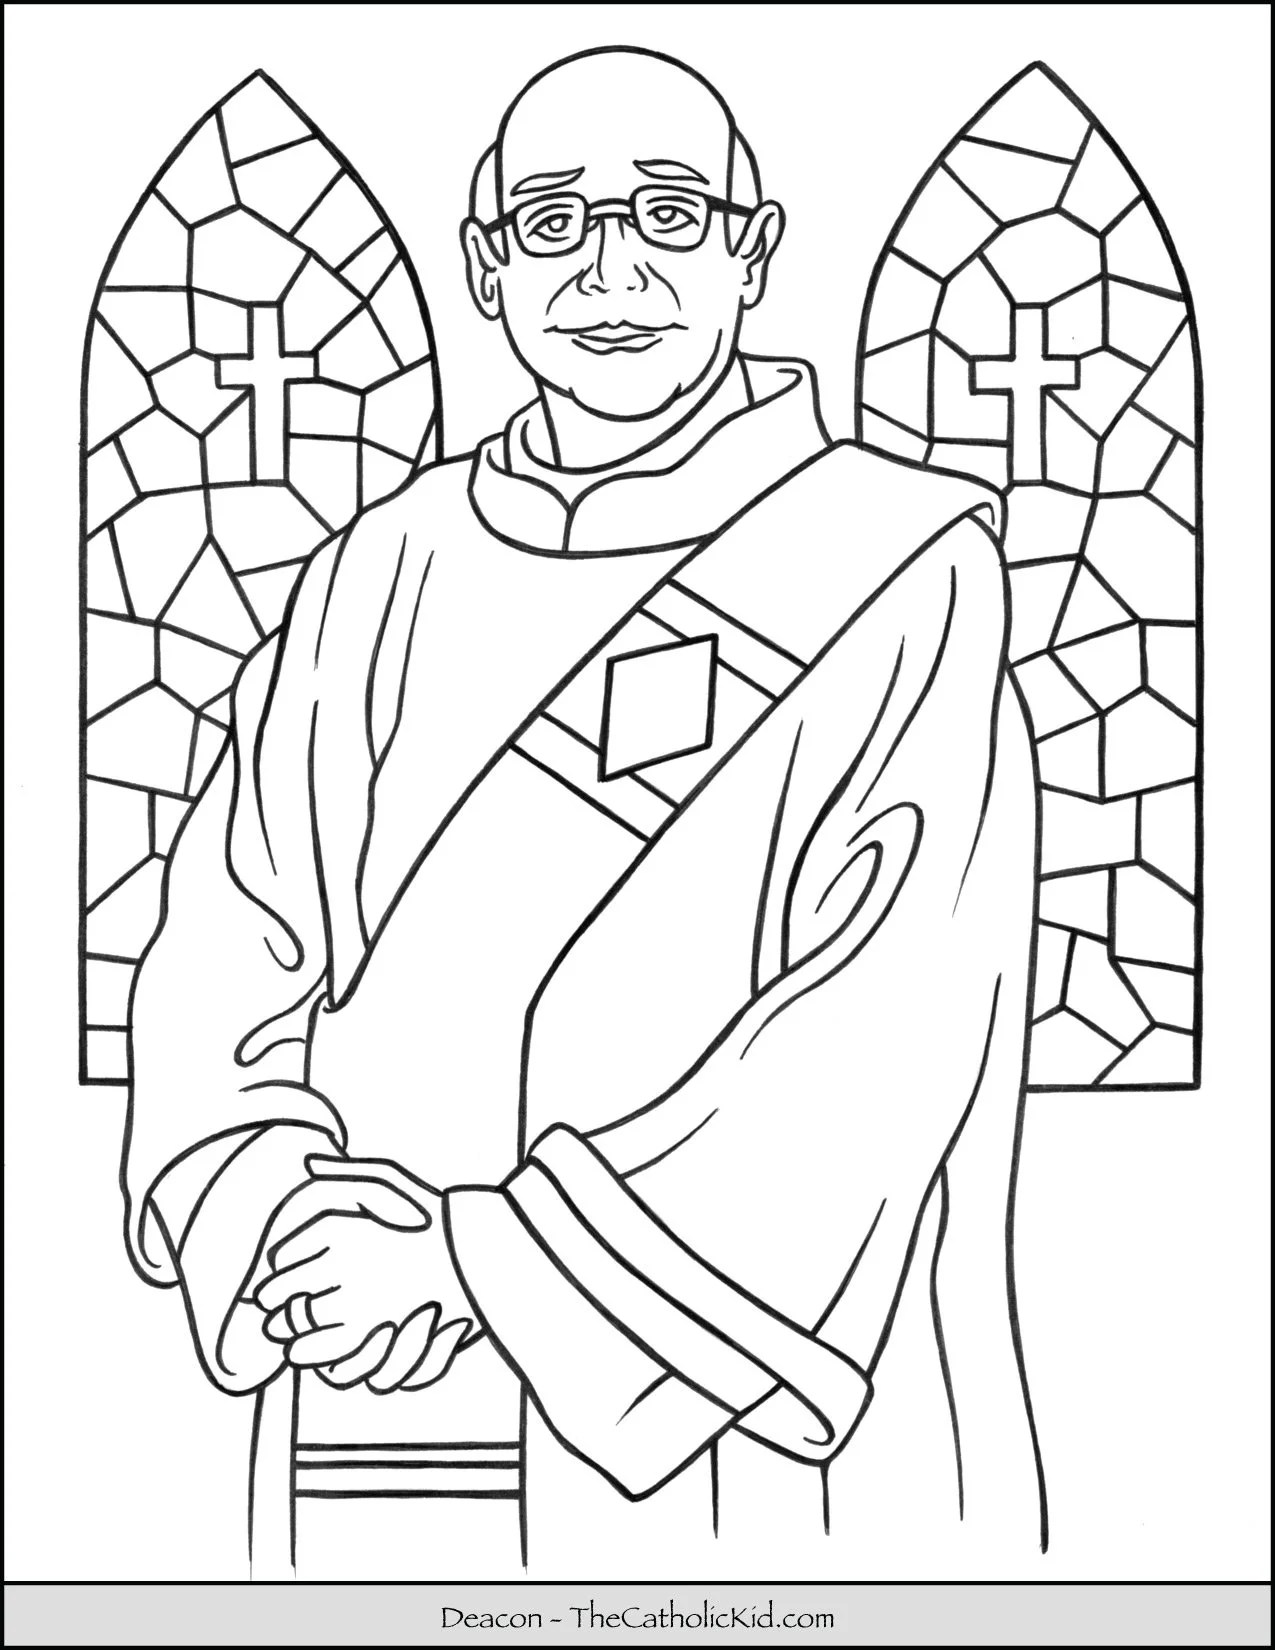 Catholic Deacon Coloring Page